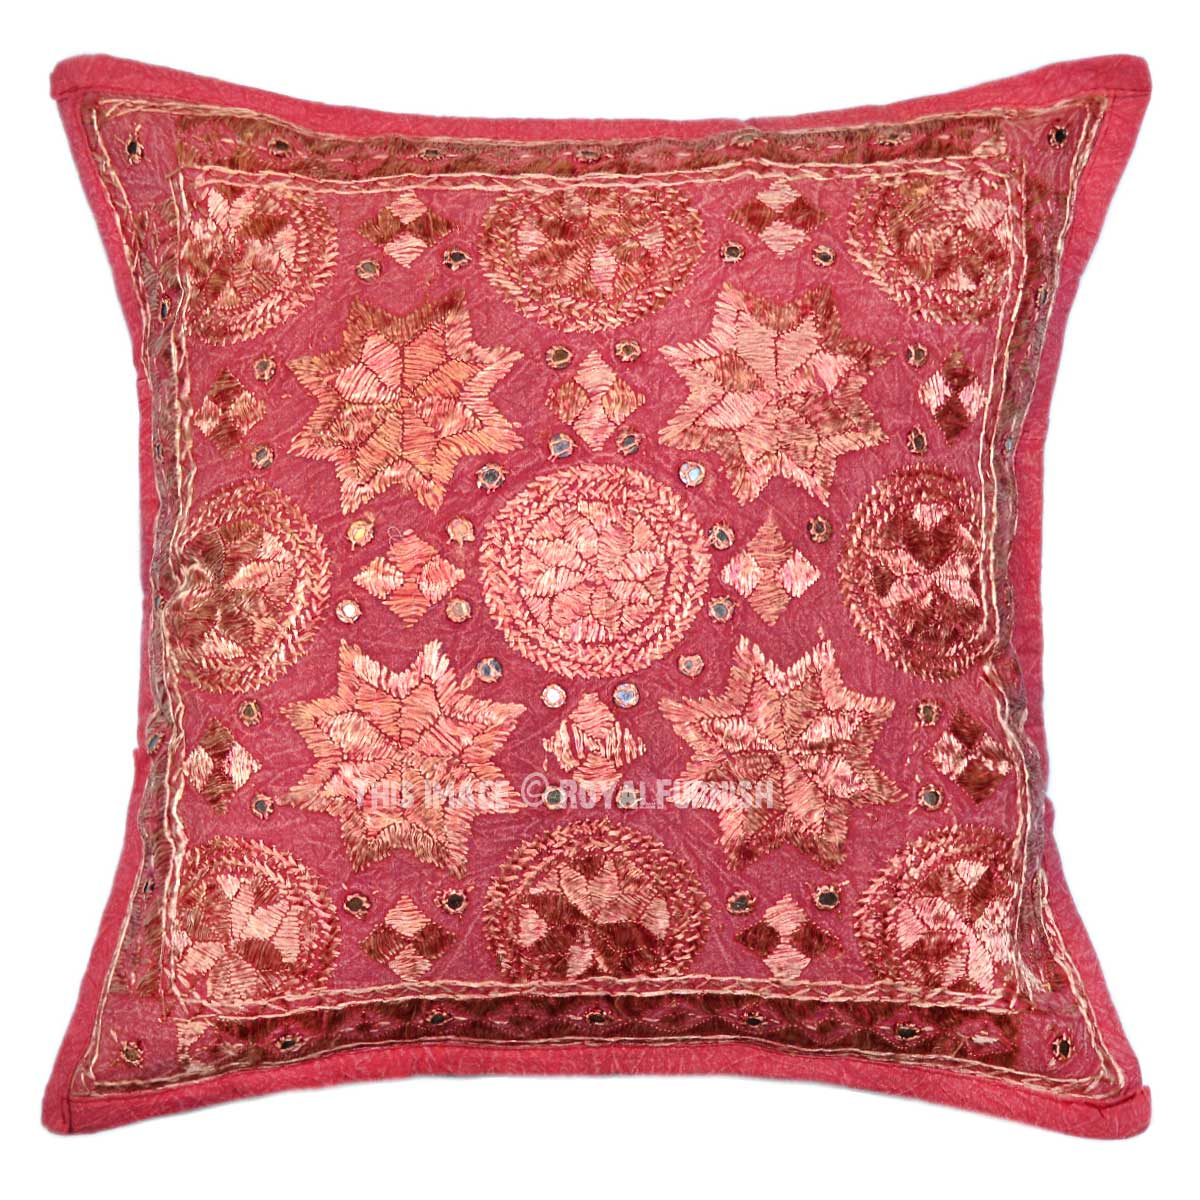 Throw Pillows Maroon : 18